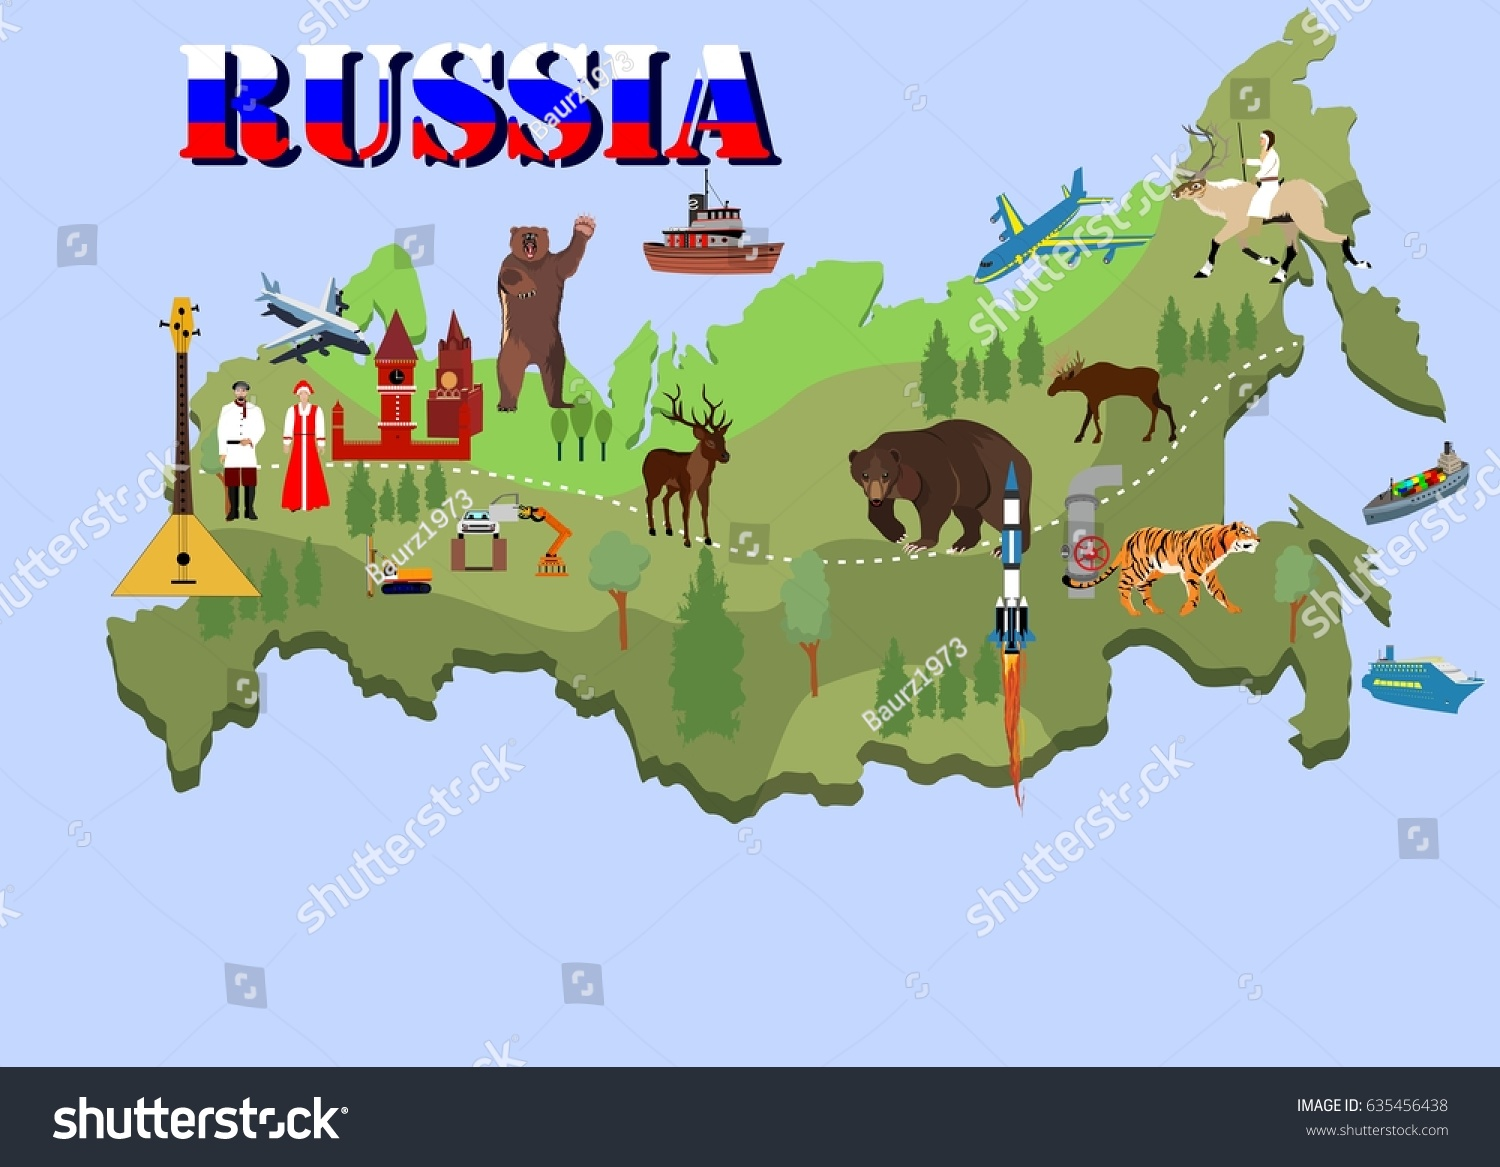 Map Of Russia For Kids.Russia Country Map Inf Ograghic Elements Stock Vector Royalty Free